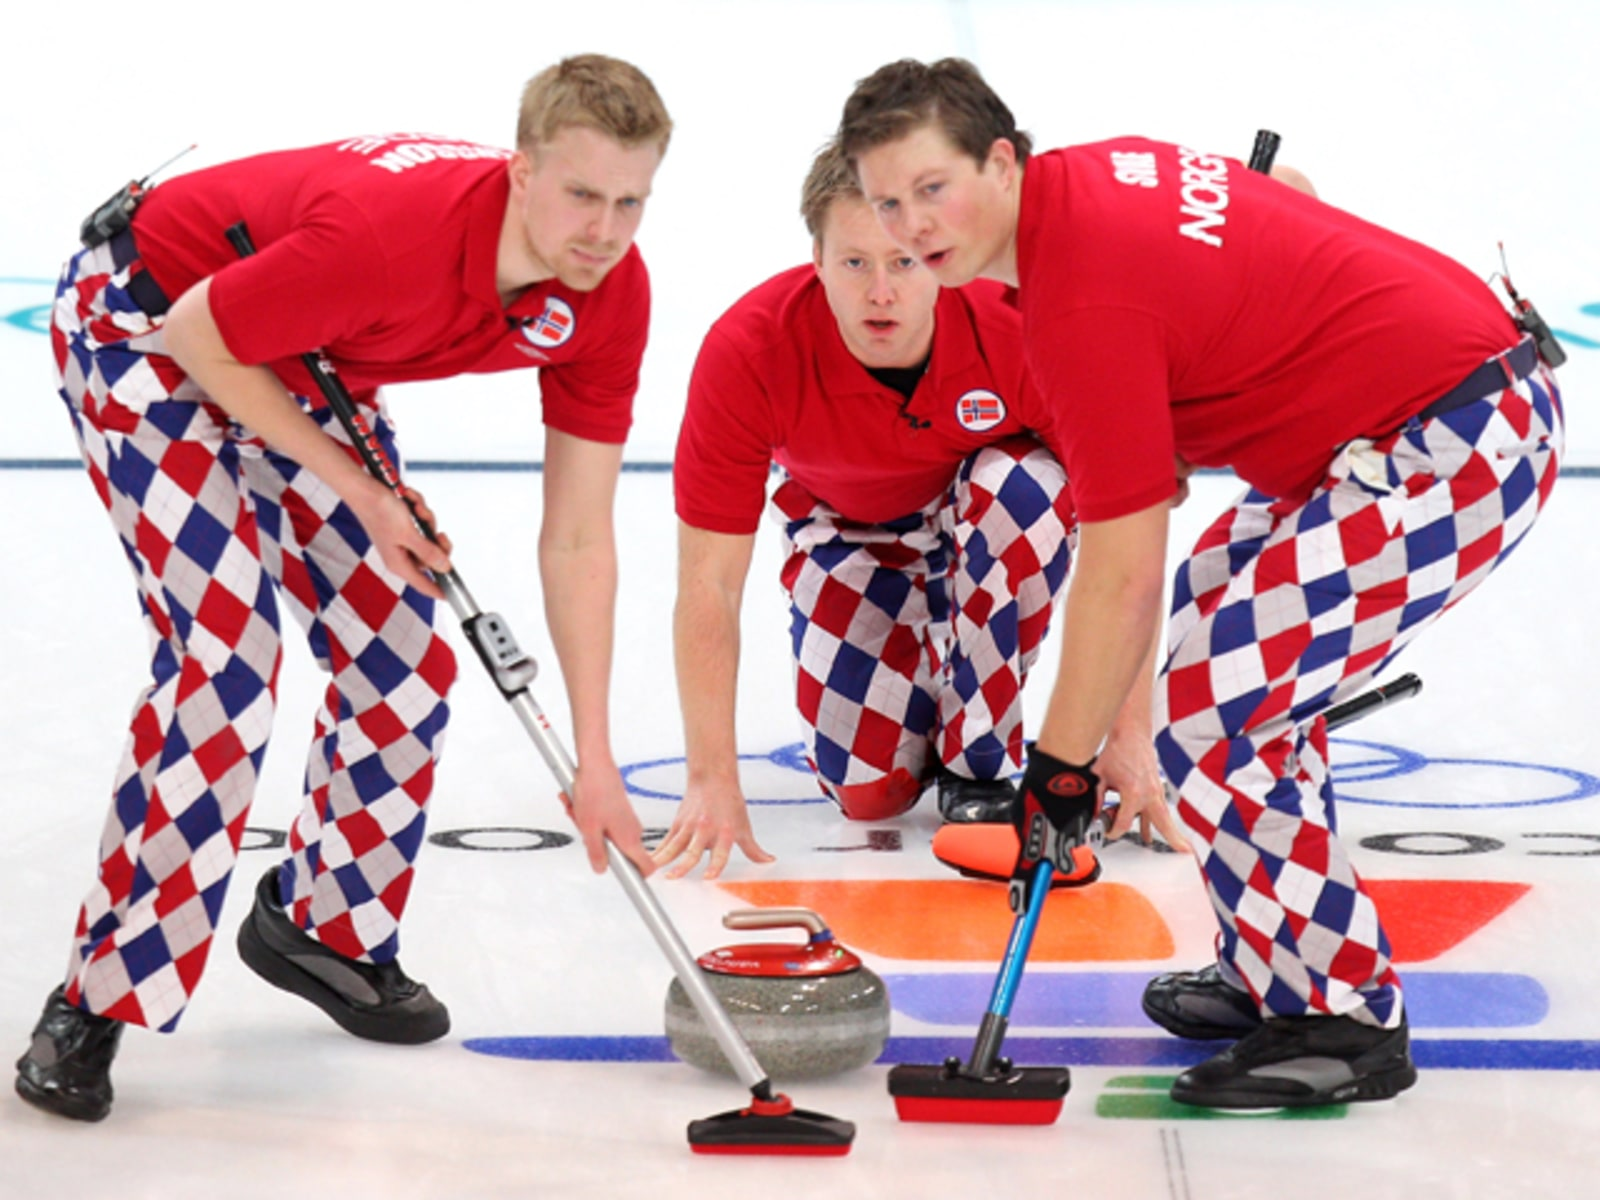 Image: Curling